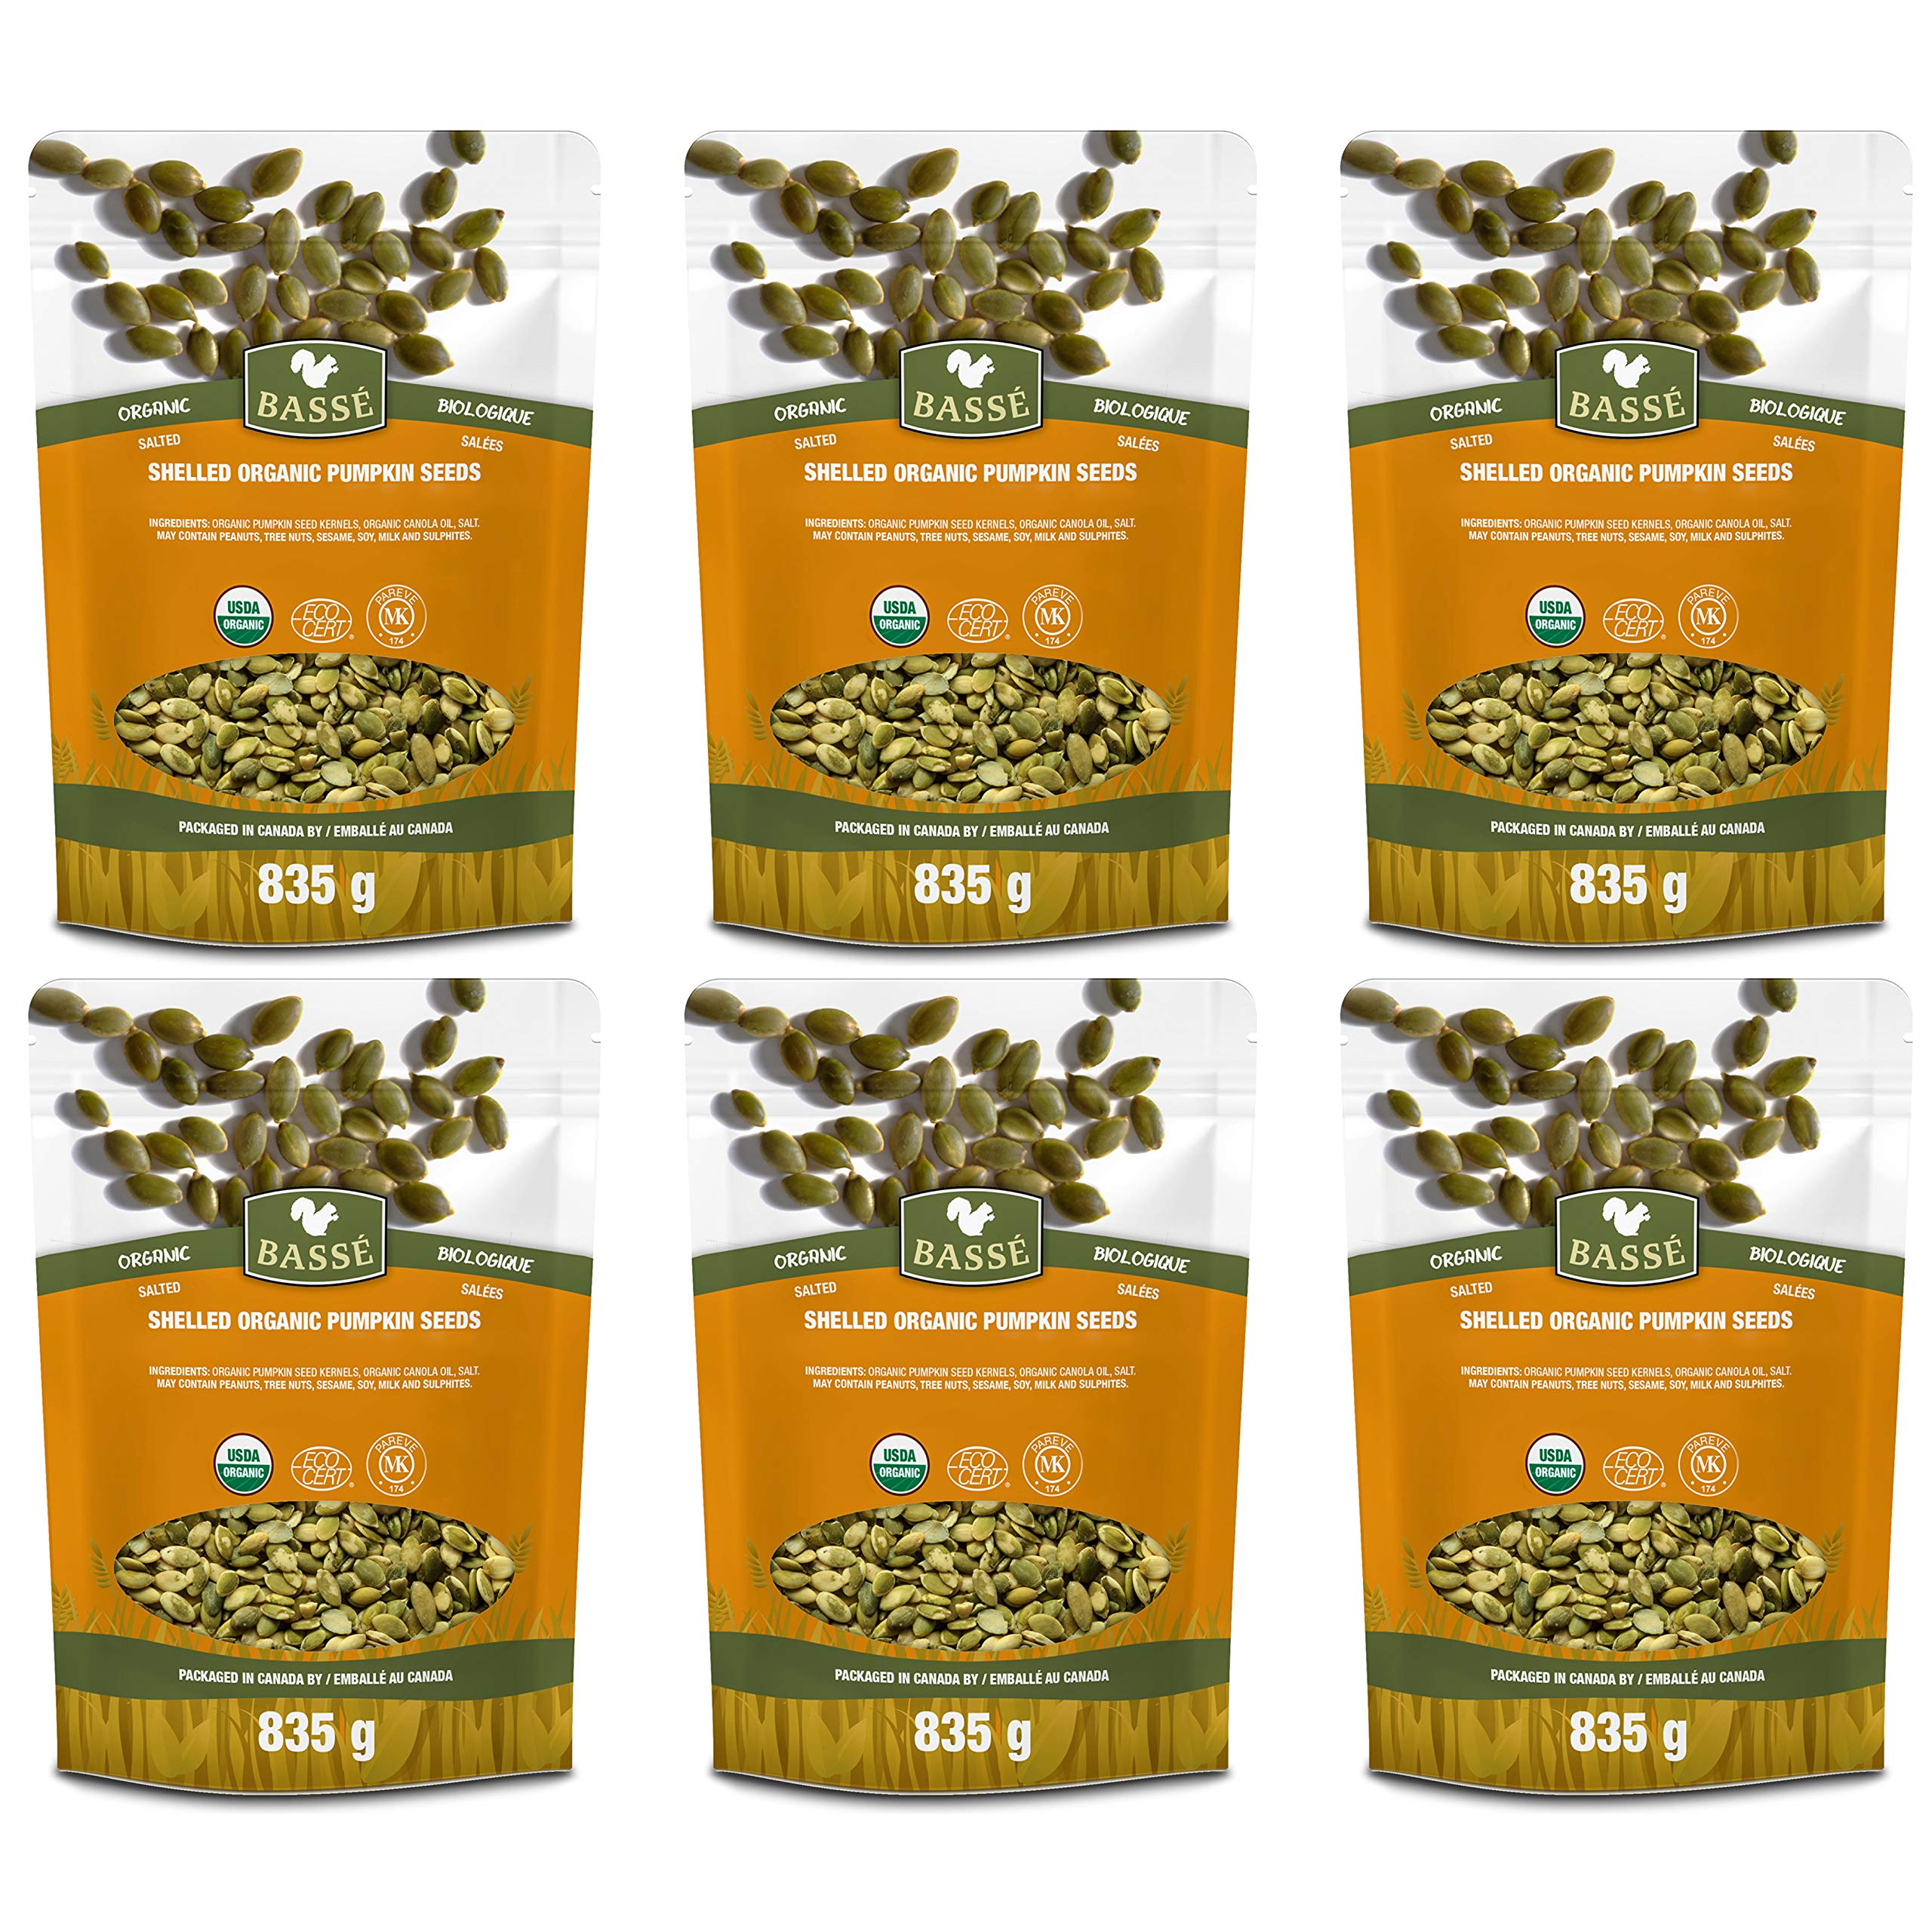 Basse Organic Pumpkin Seeds Kernels Nutritious, Salted, Wholesome, Superfood Snack 11 lb